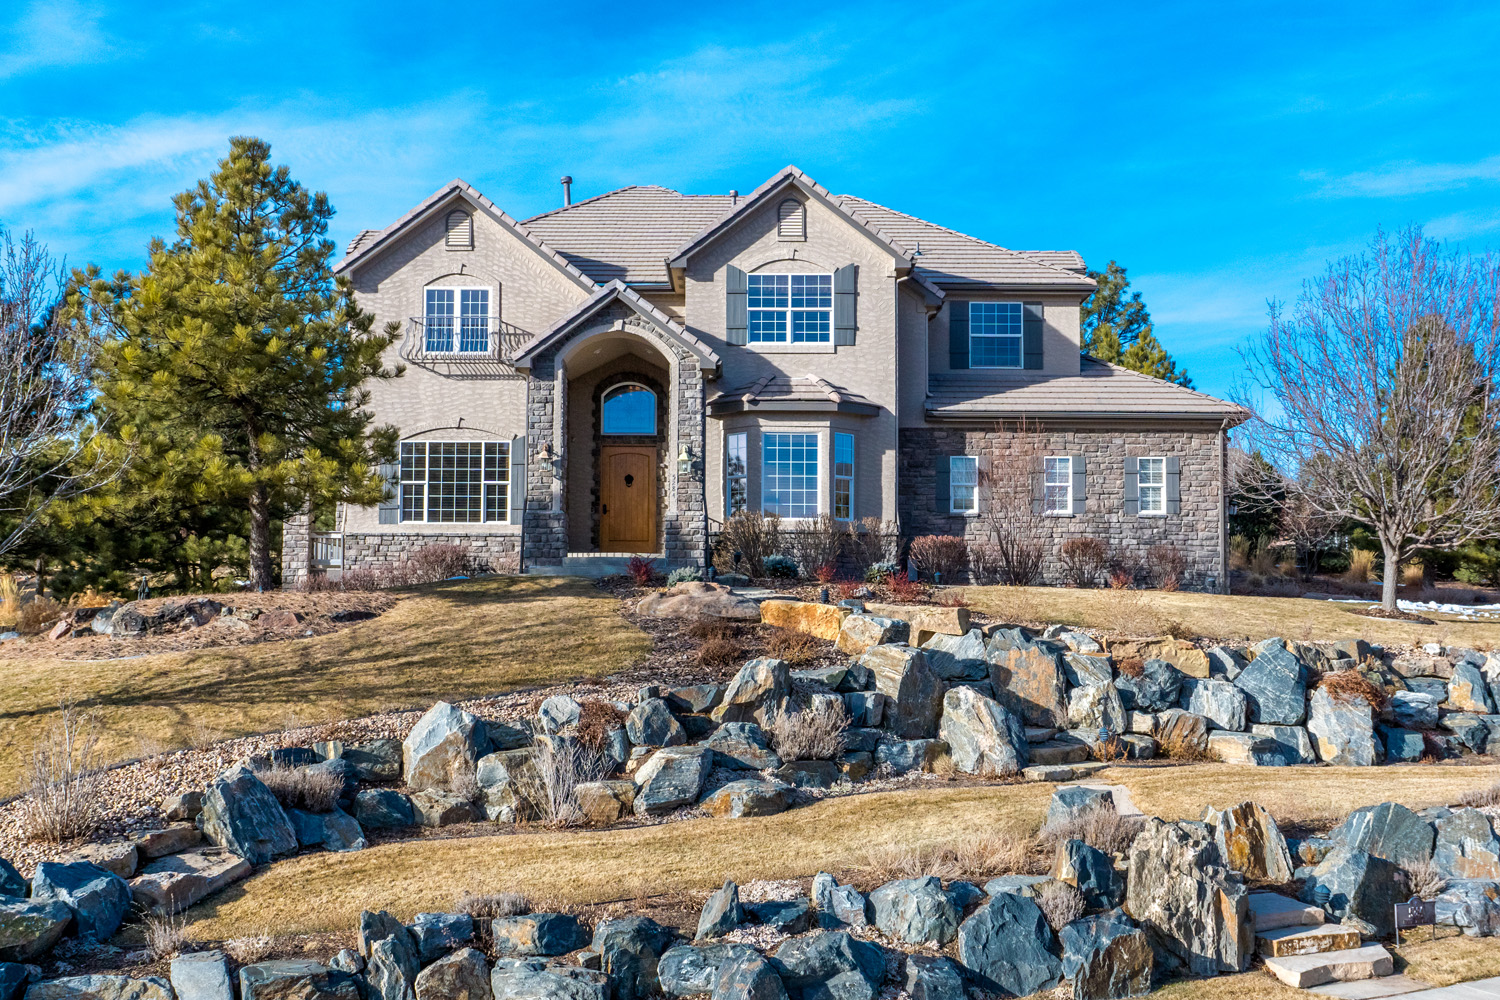 Single Family Home for Active at Stunning Timbers Retreat That Offers Spectacular Mountain Views 5284 Pinyon Jay Road Parker, Colorado 80134 United States